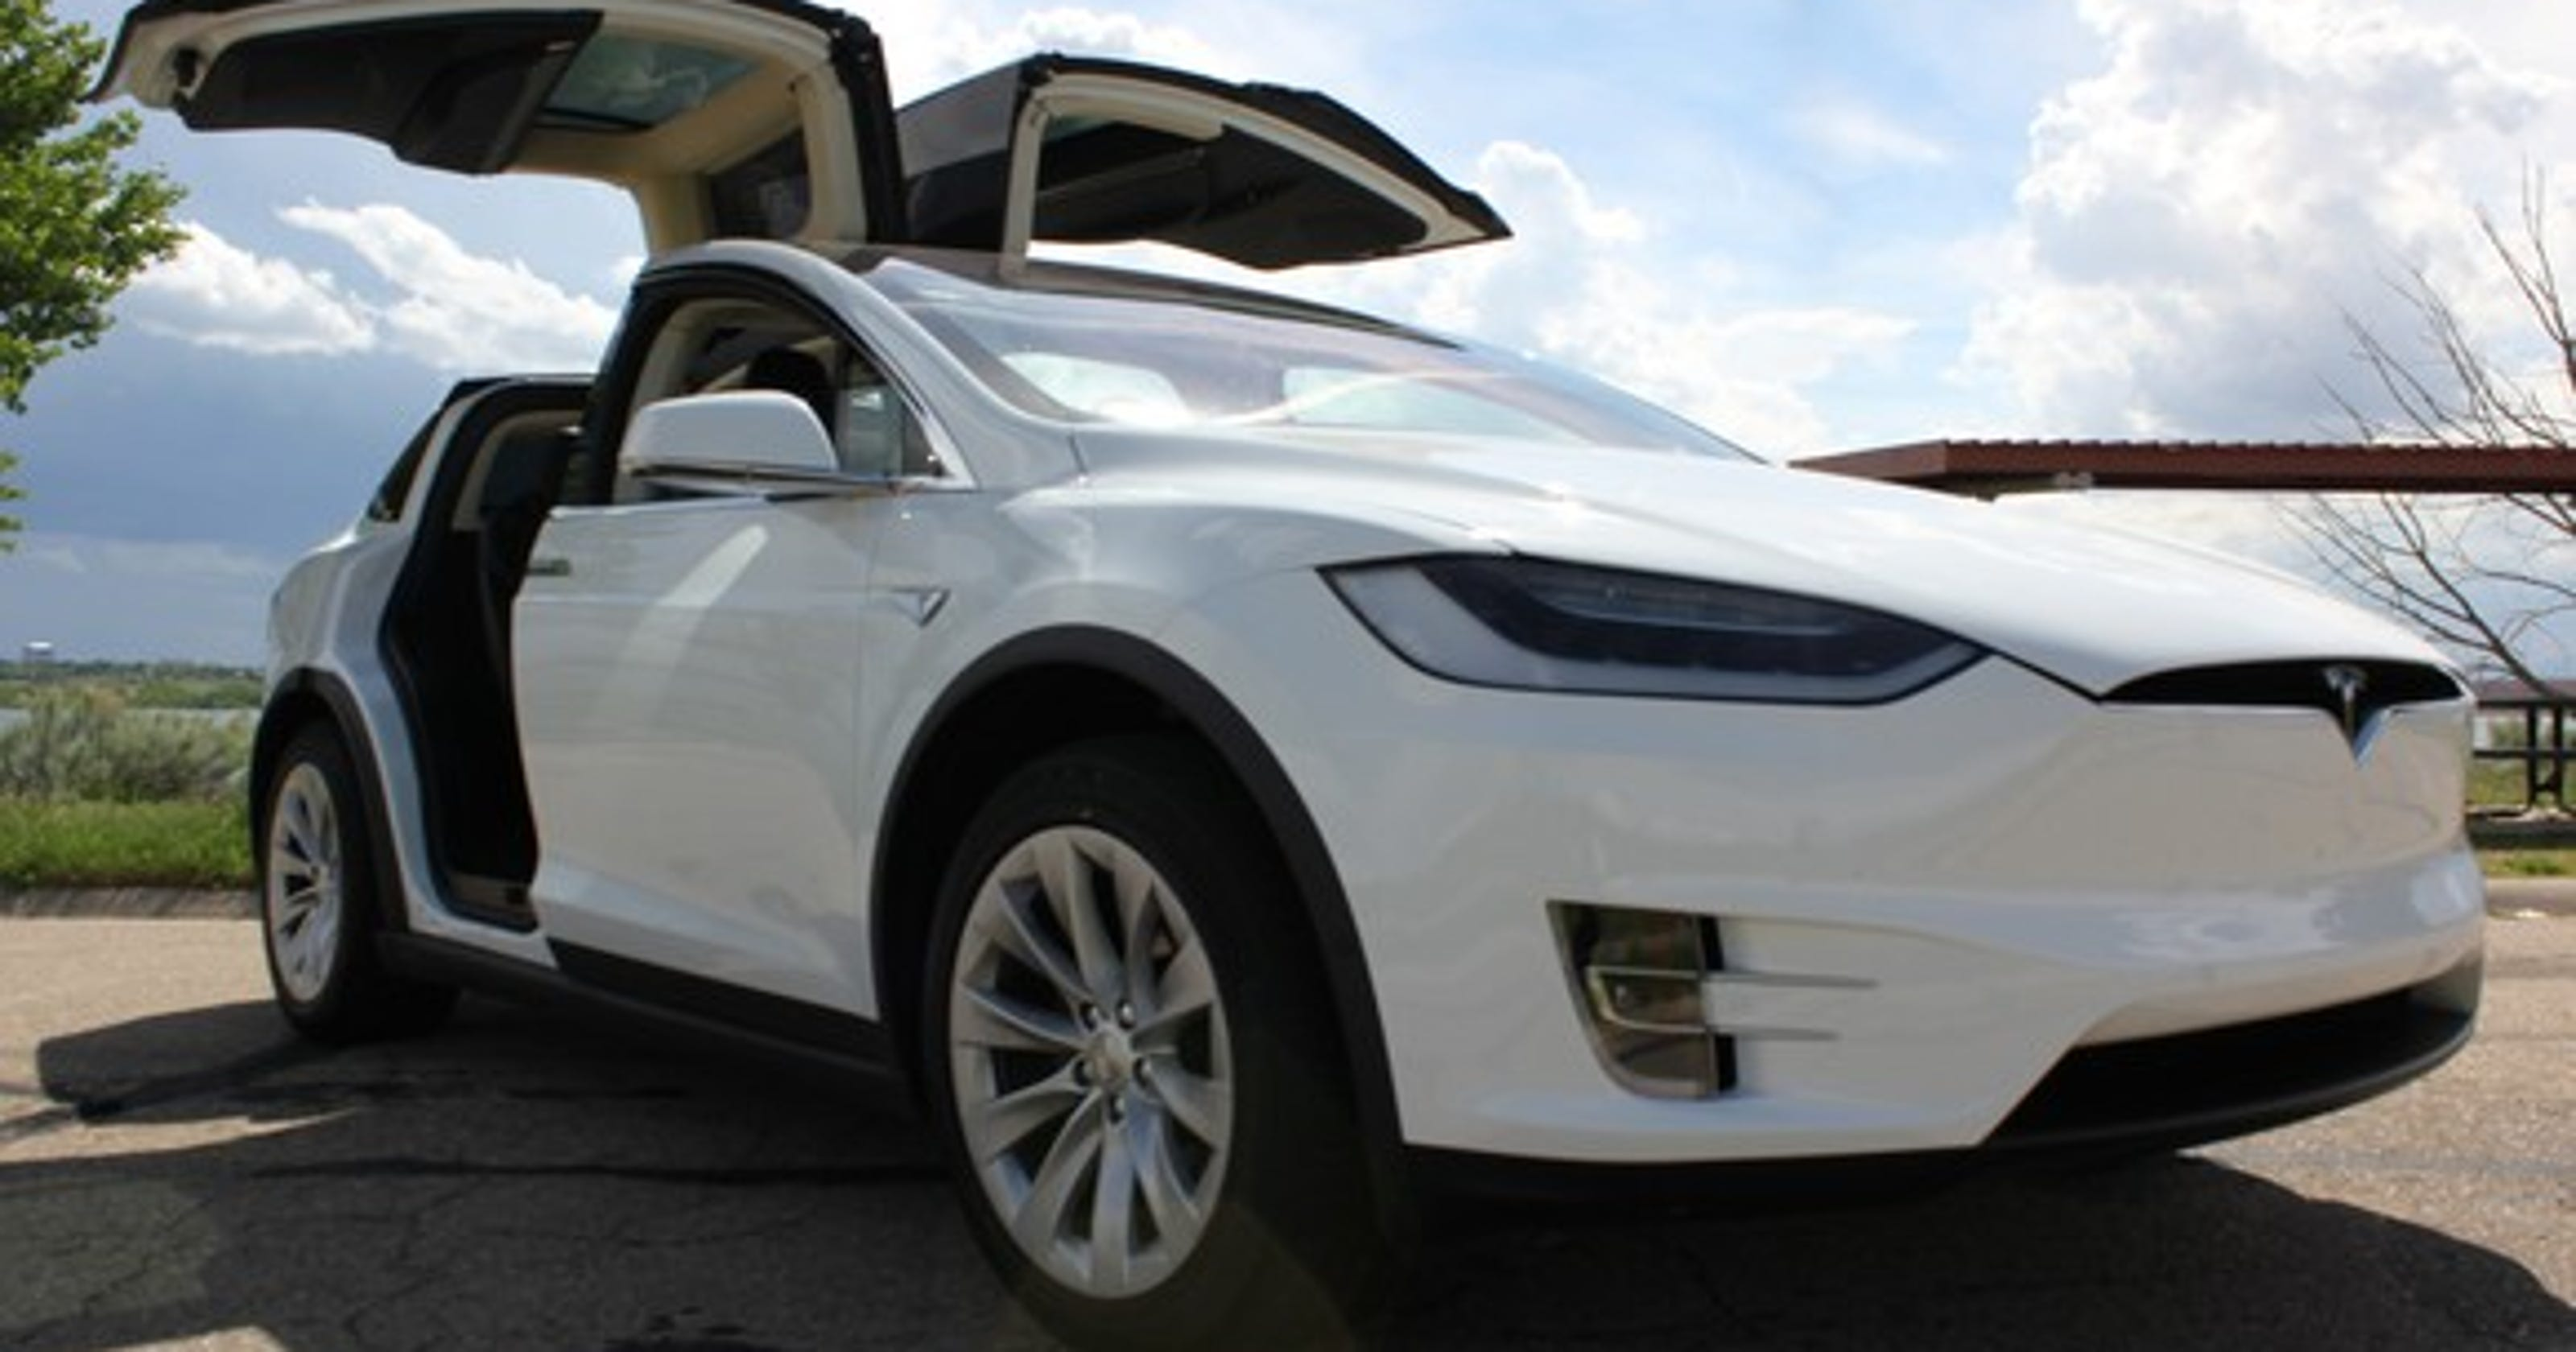 Tesla to offer cheaper Model X crossover